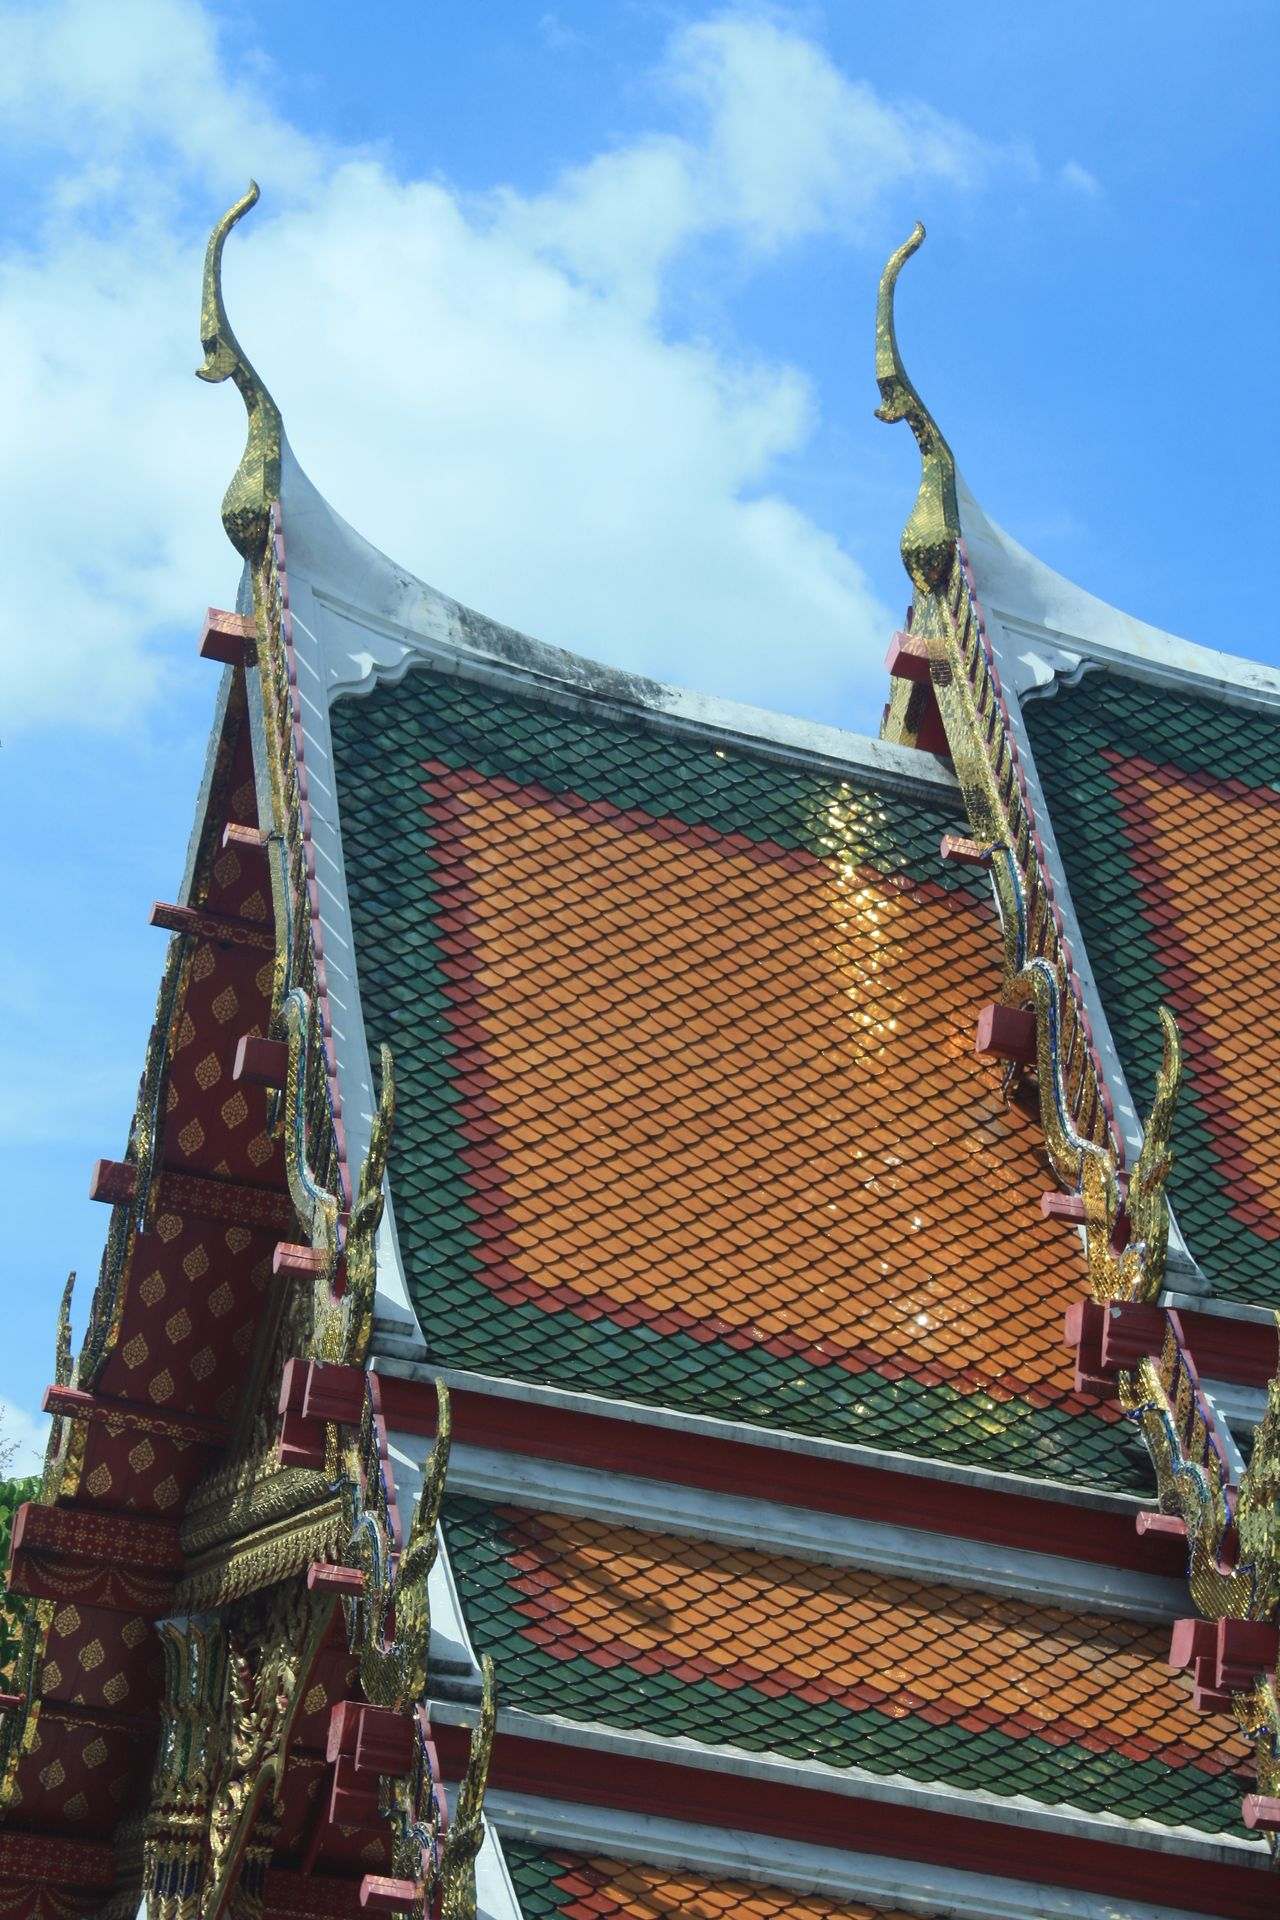 Beautiful stock photos of bangkok, sky, built structure, low angle view, architecture